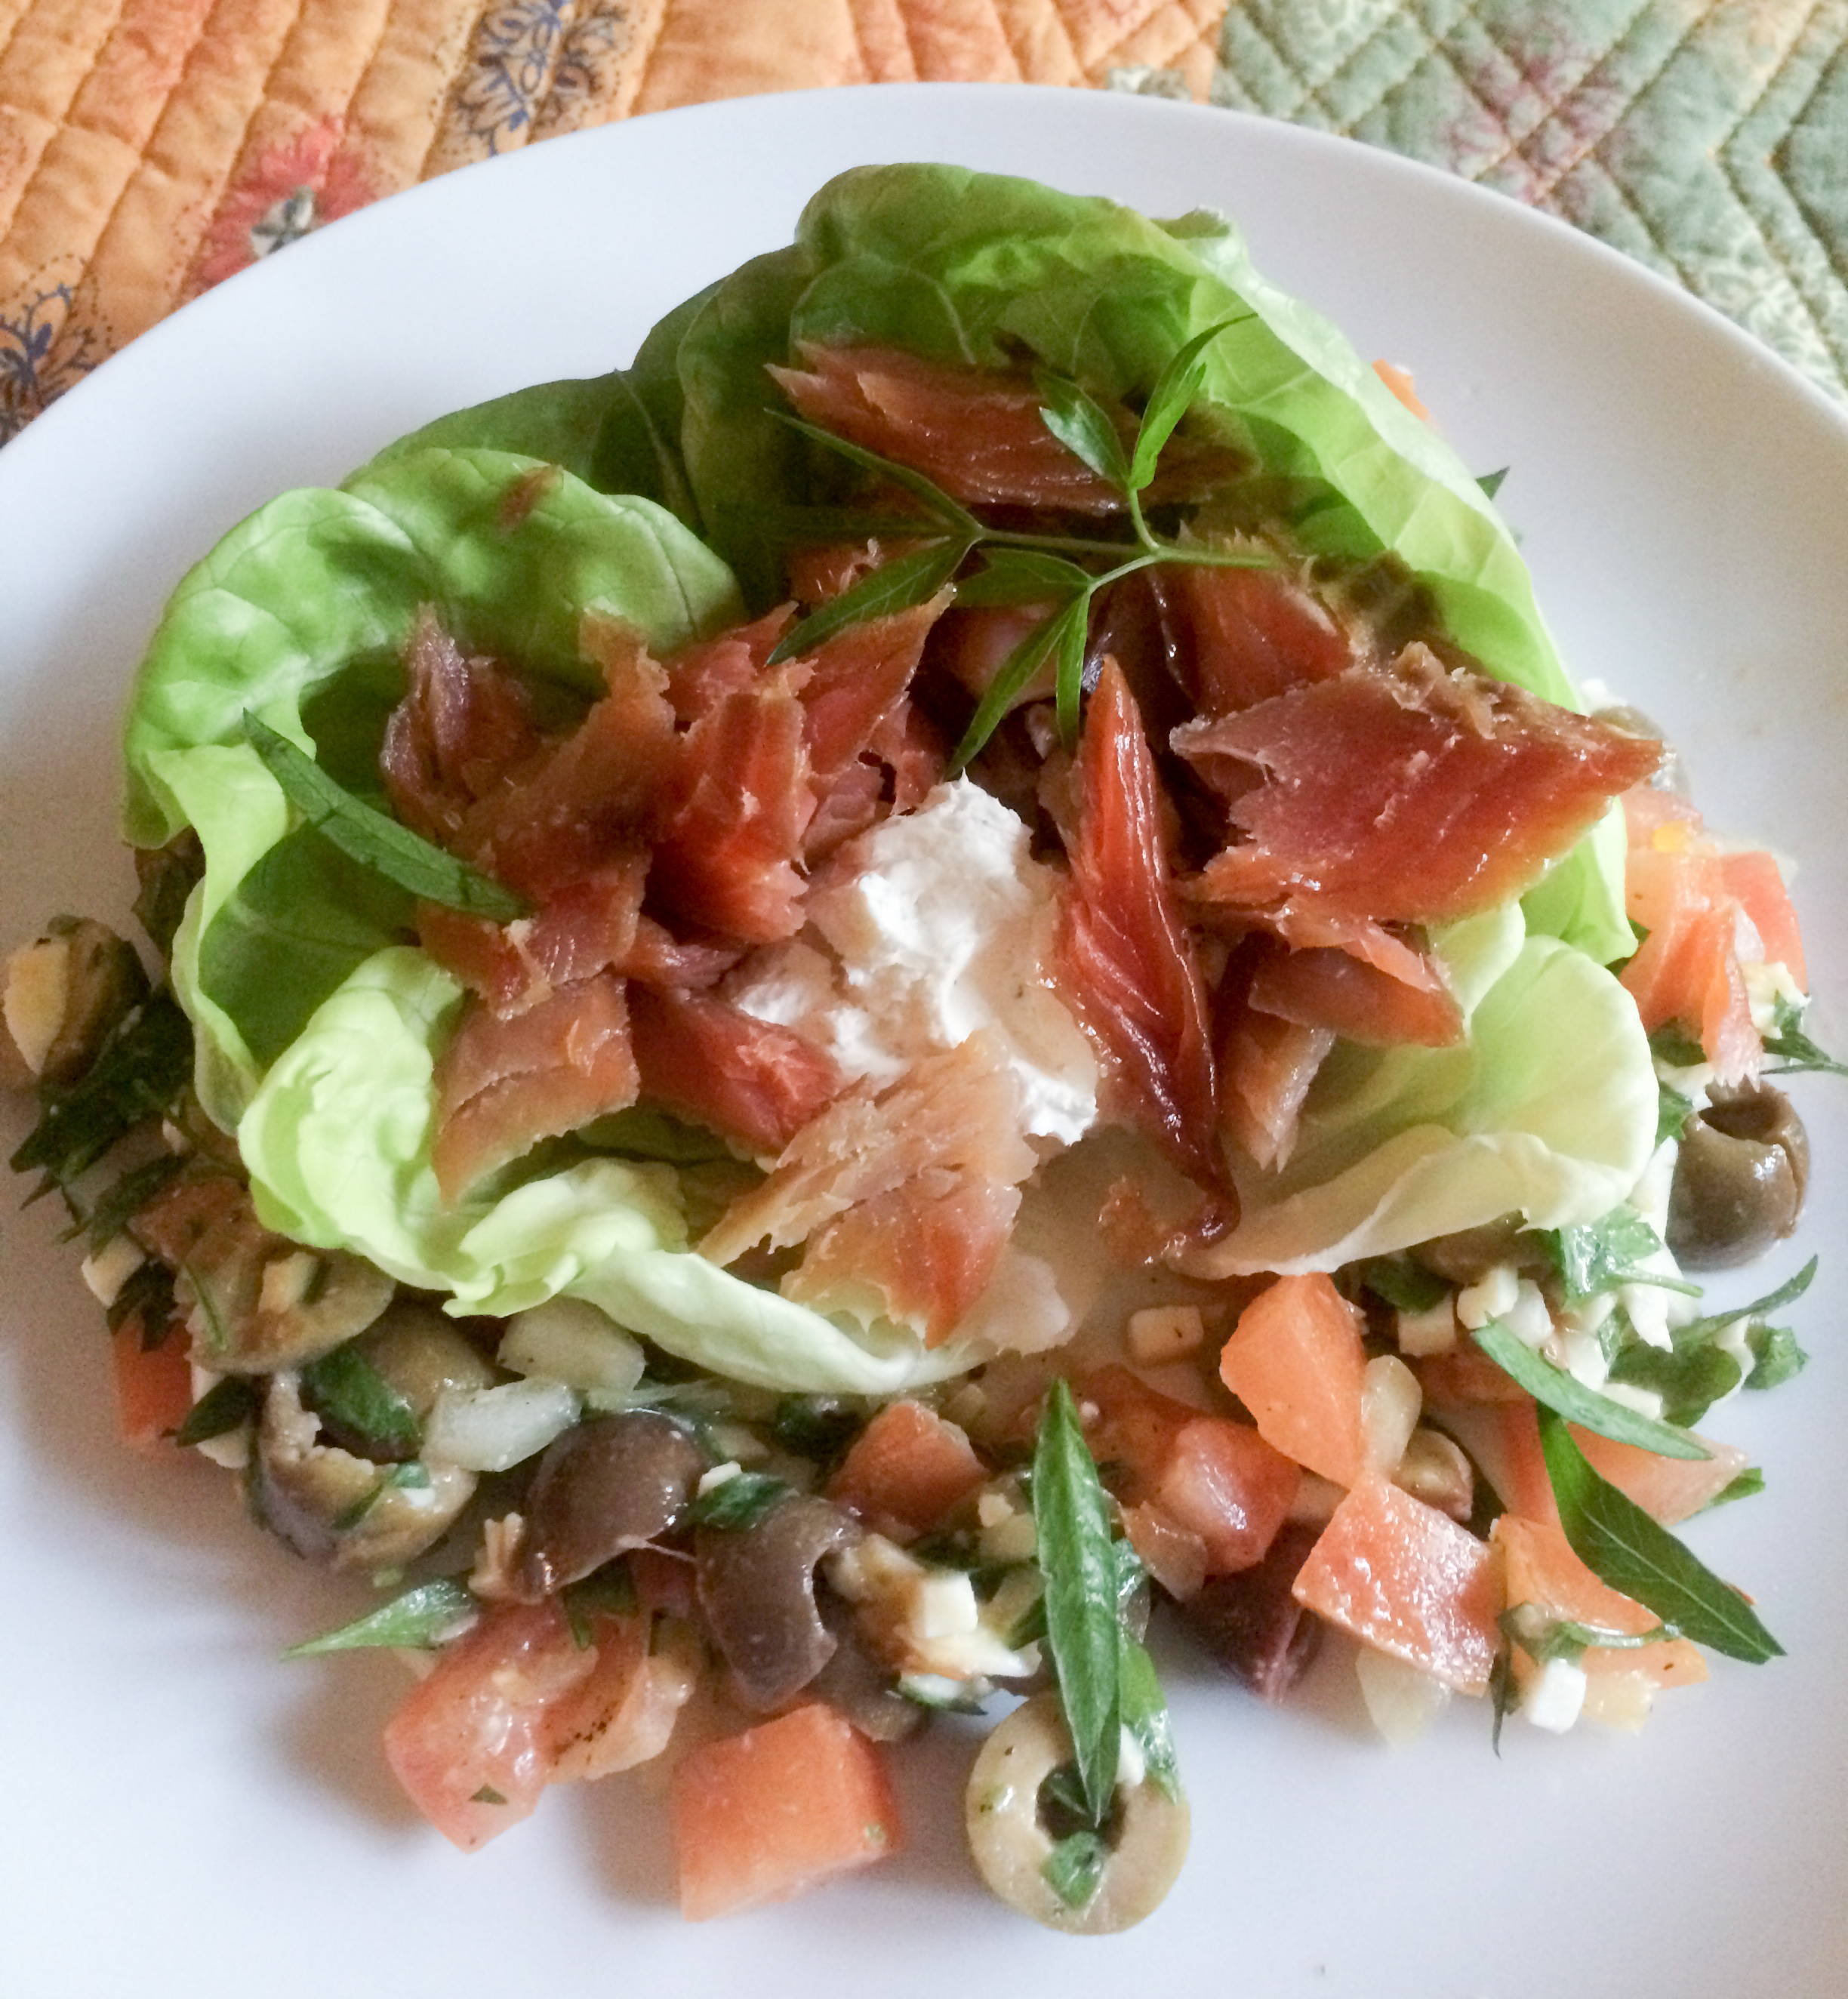 Smoked Trout Salad with Horseradish Cream